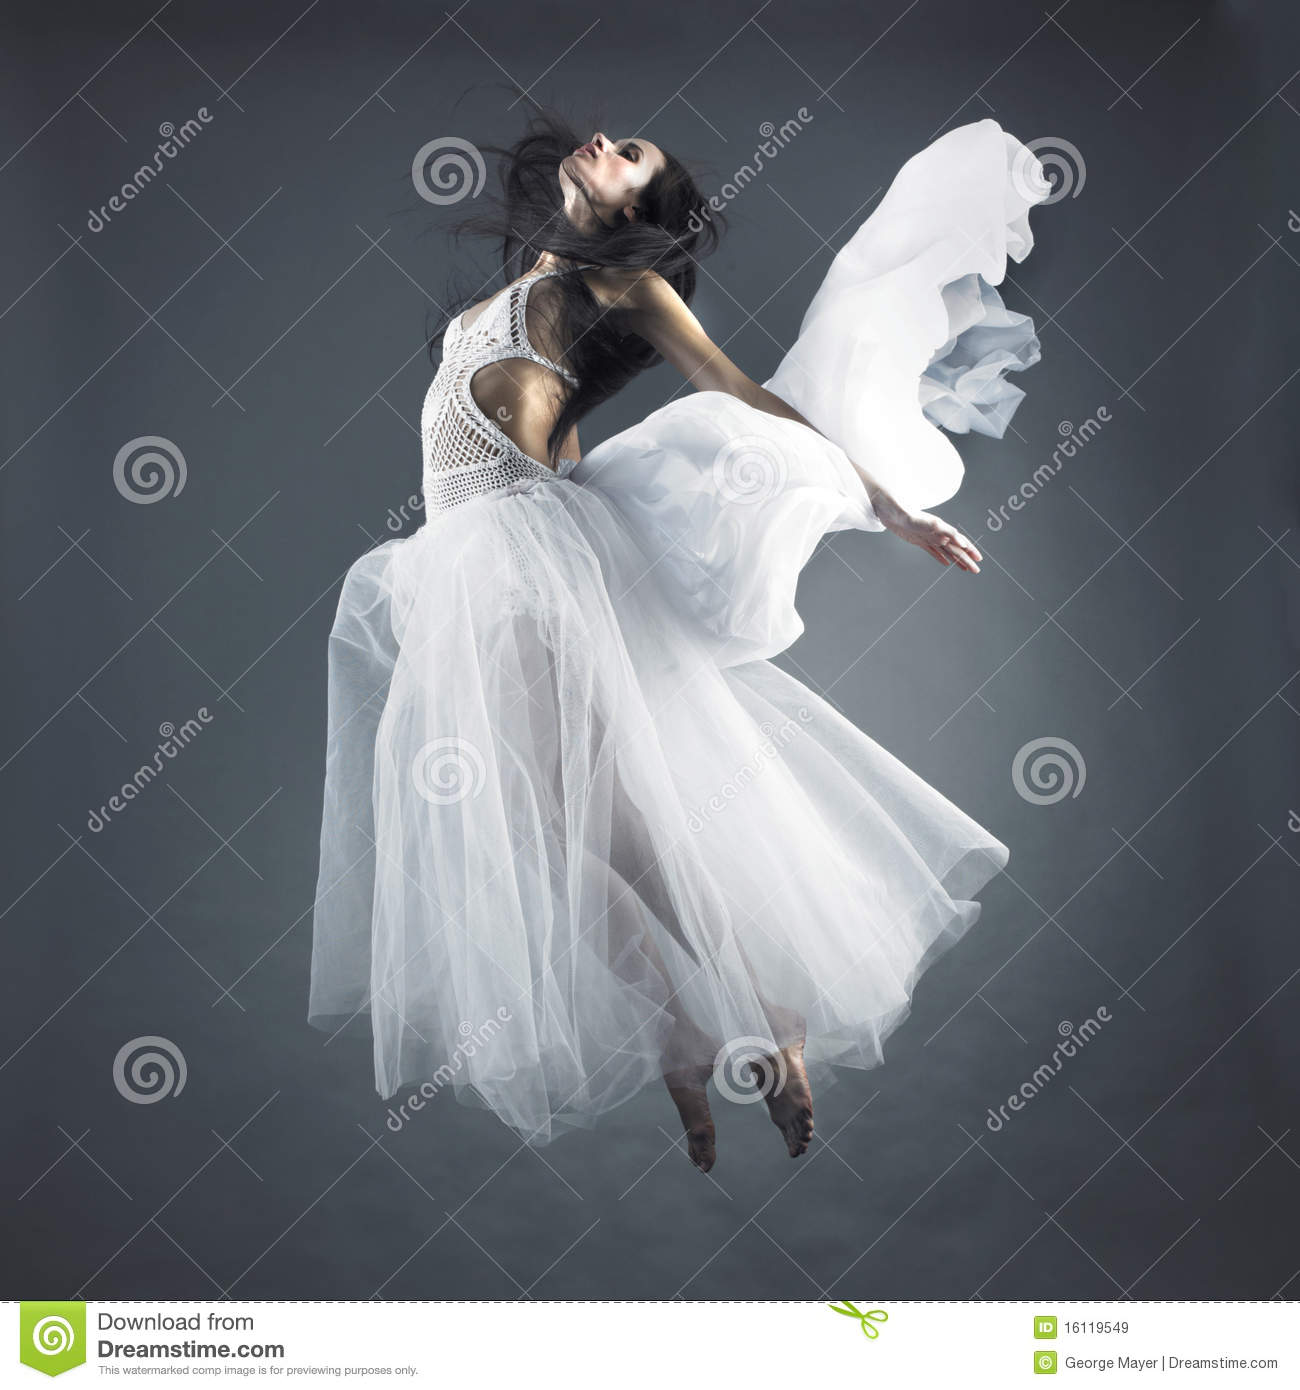 Dream About Wallpaper Falling Off Fairy Flying Girl Stock Image Image Of Dress Fairy